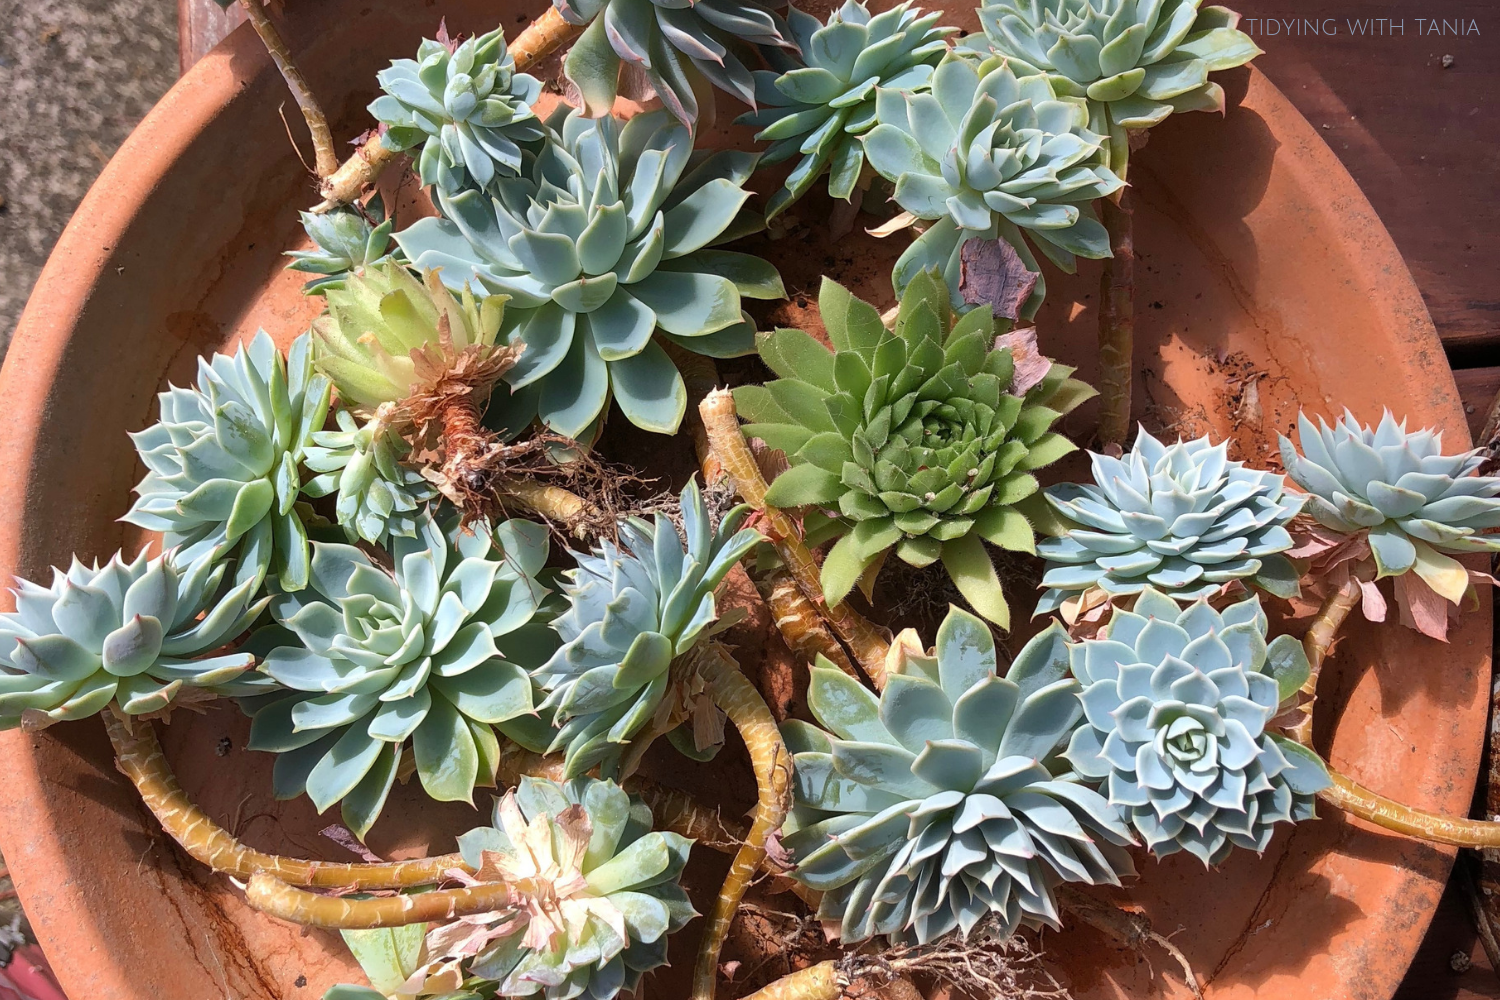 Succulents ready to repot | Tidying with Tania